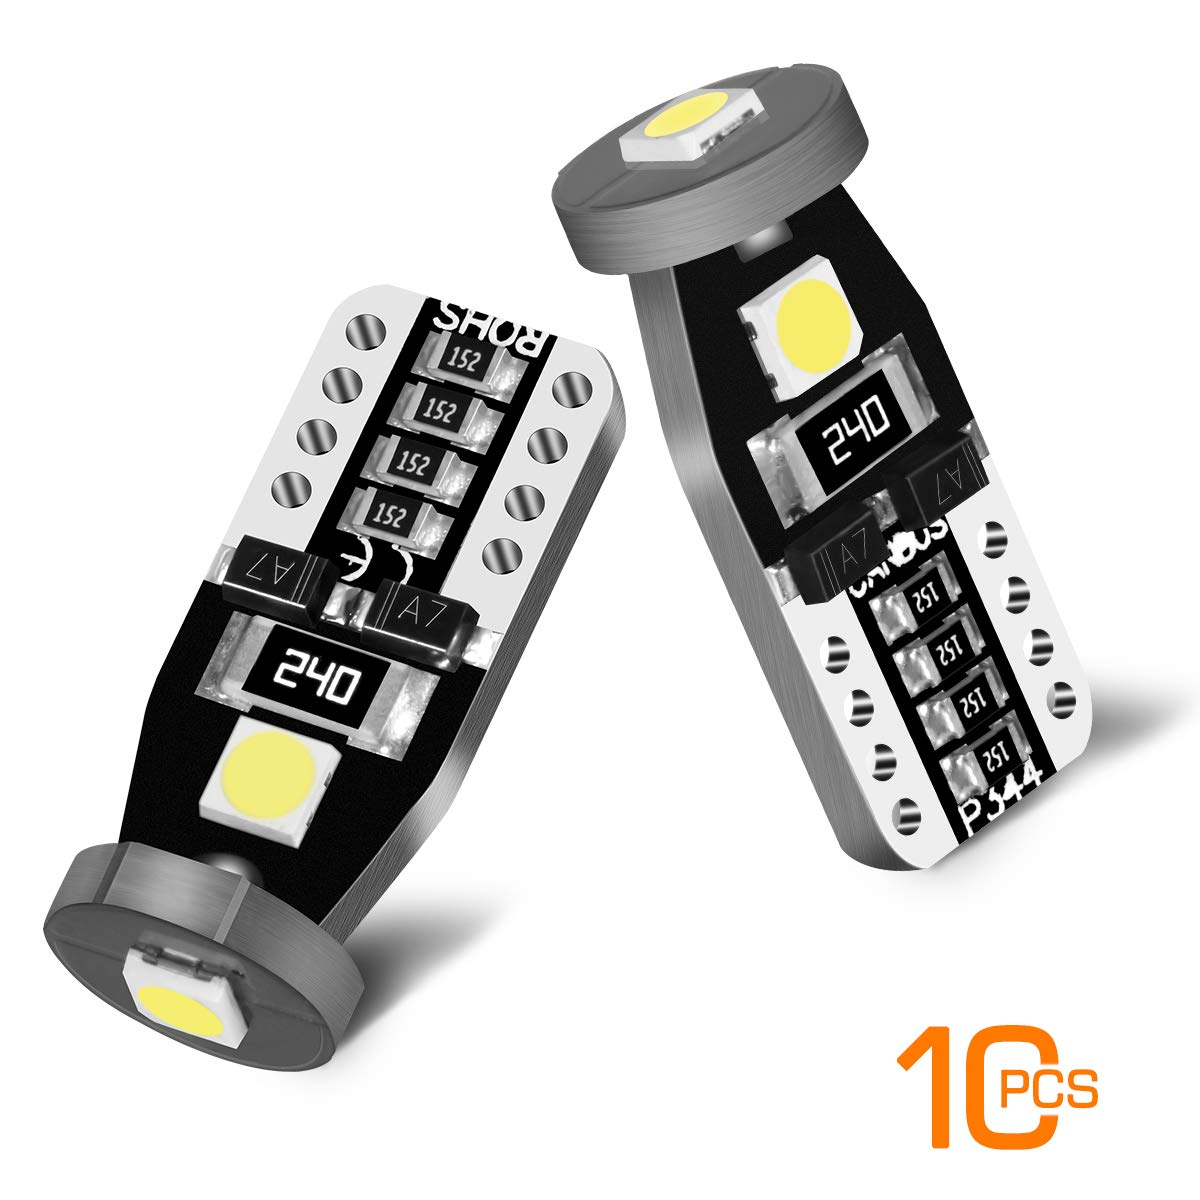 Pack of 10 194 168 T10 LED Dome Lights Bulb AUTOBEAM A1 Series LED Replacement Bulbs for Car Dome Map Door Courtesy License Plate Lights 6000K